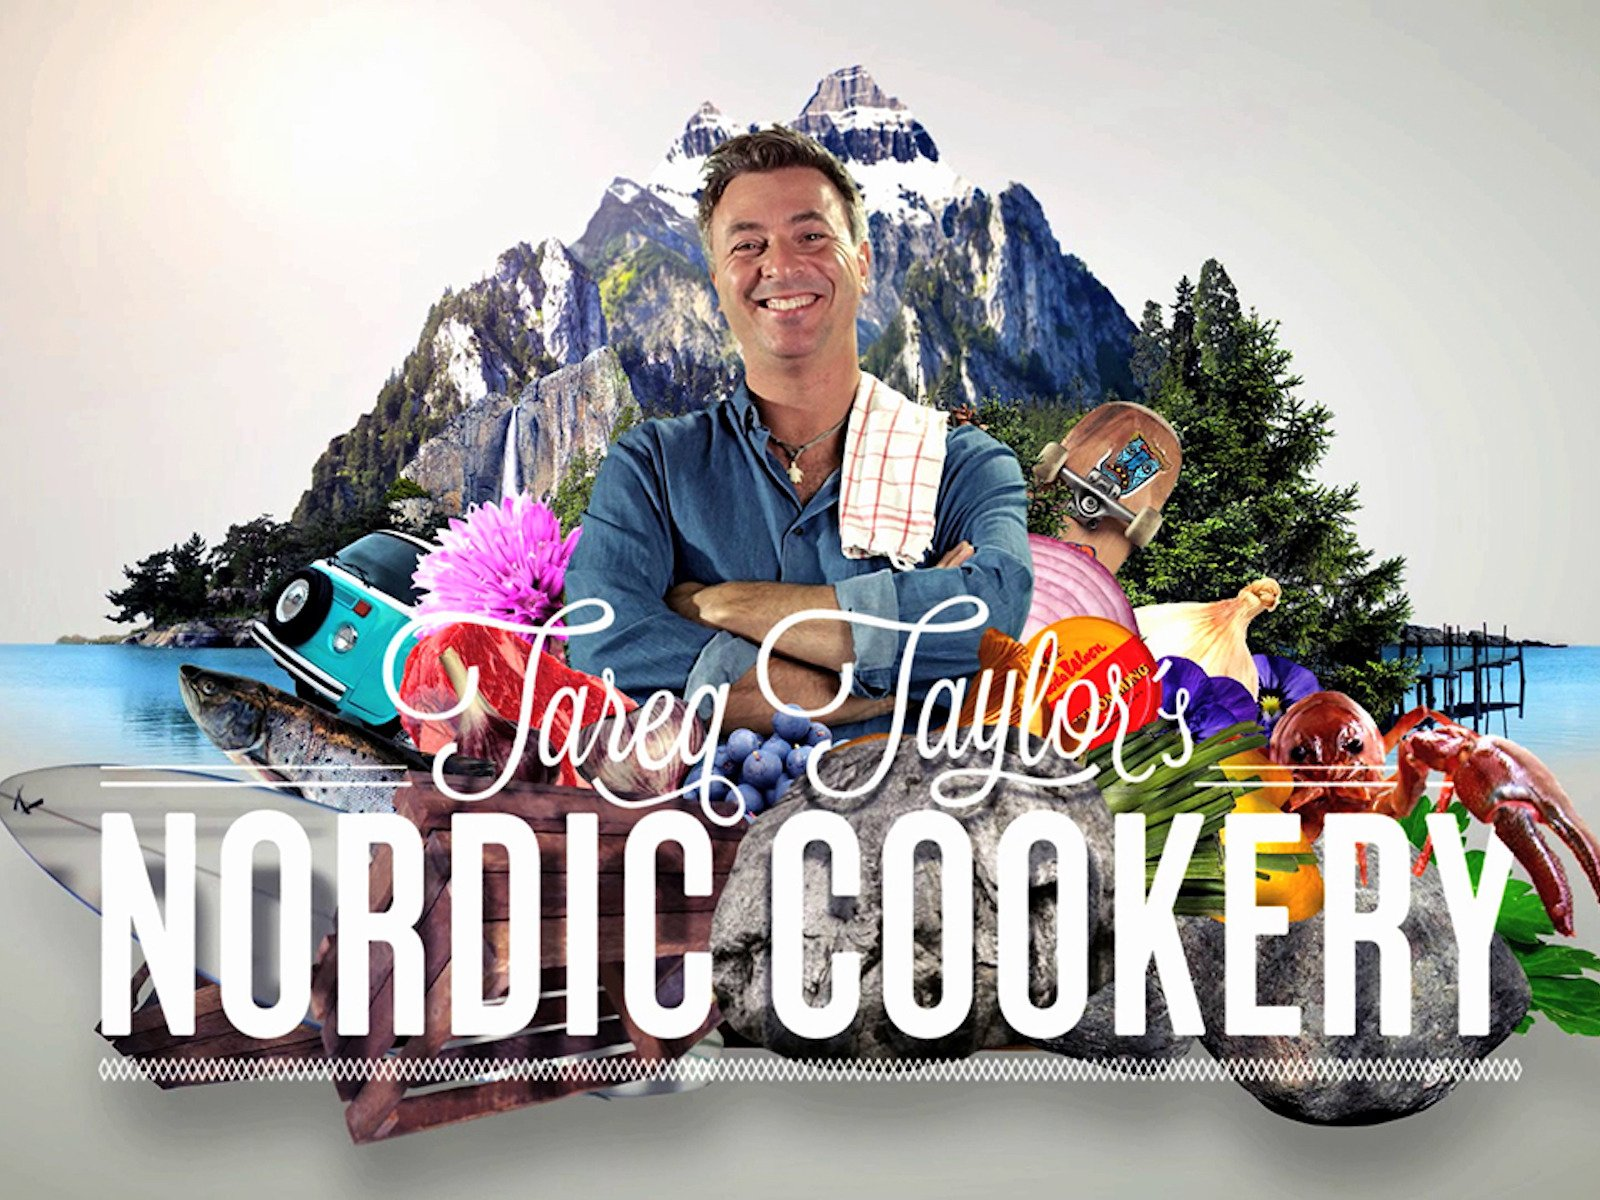 Tareq Taylor's Nordic Cookery - Season 1